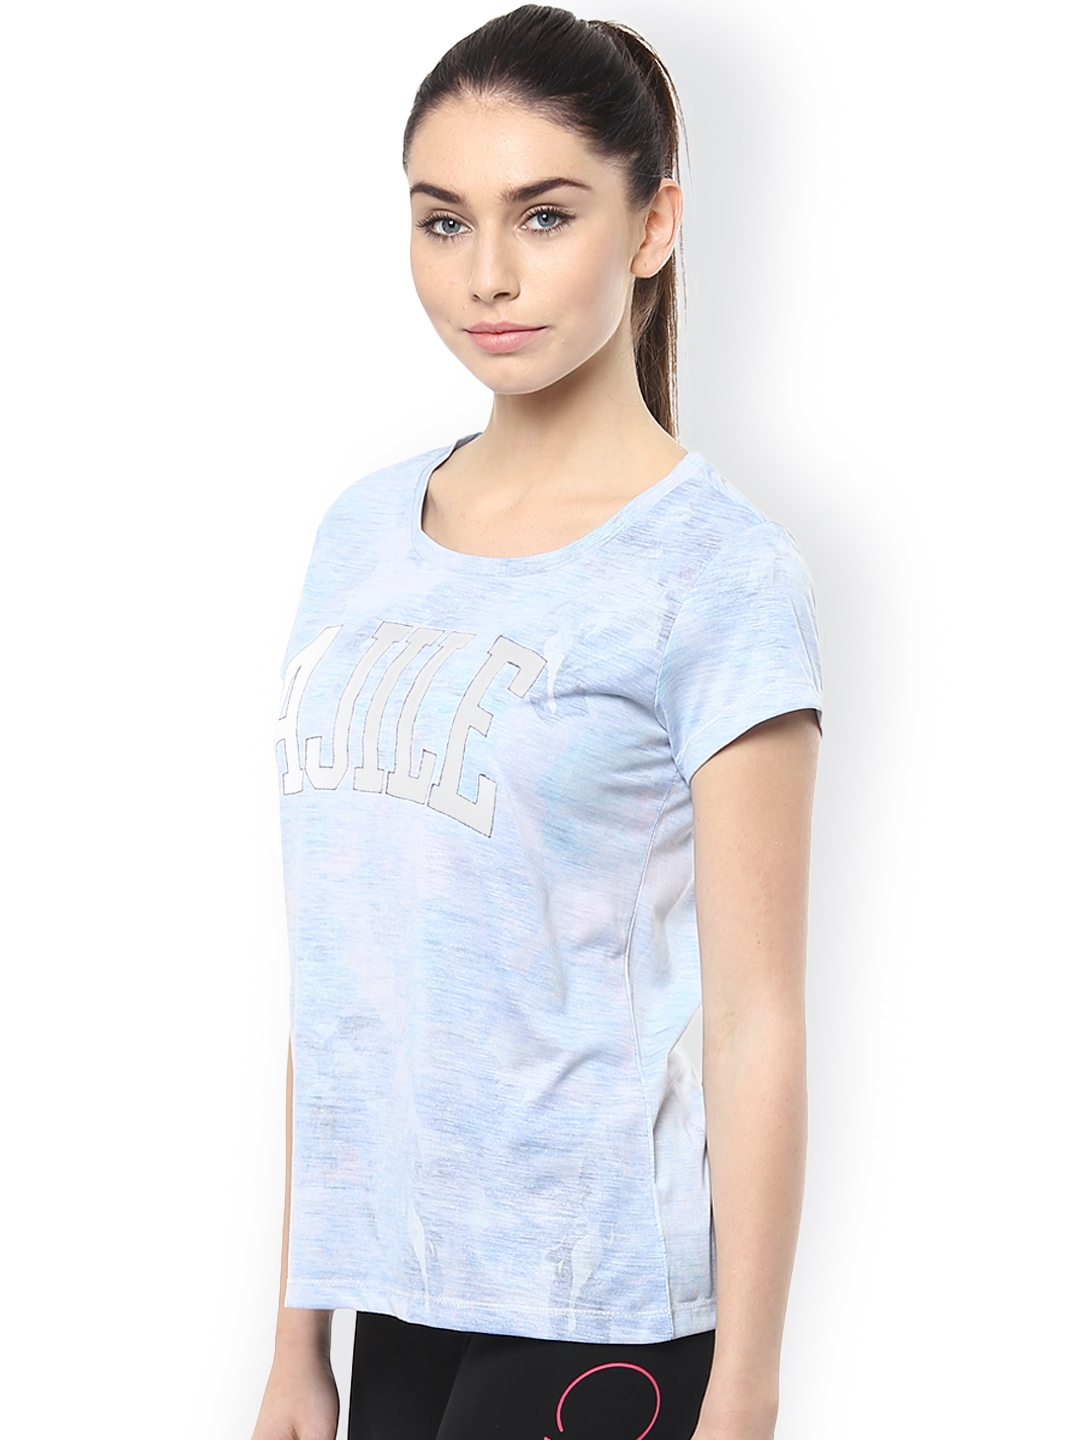 ad04c1fbd0c Buy Ajile By Pantaloons Women Blue Printed Round Neck T Shirt ...